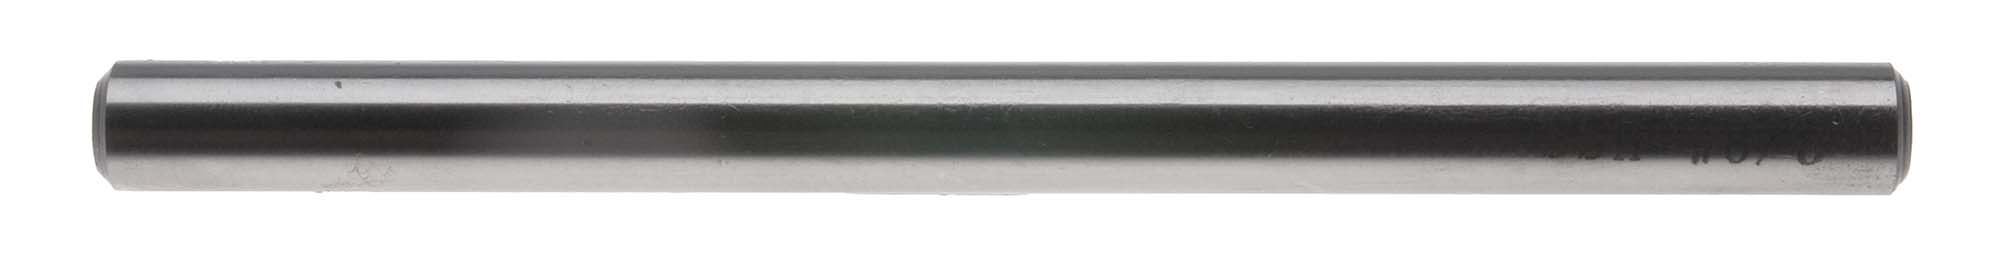 "17/64"" Jobber Length Drill Blank - High Speed Steel"